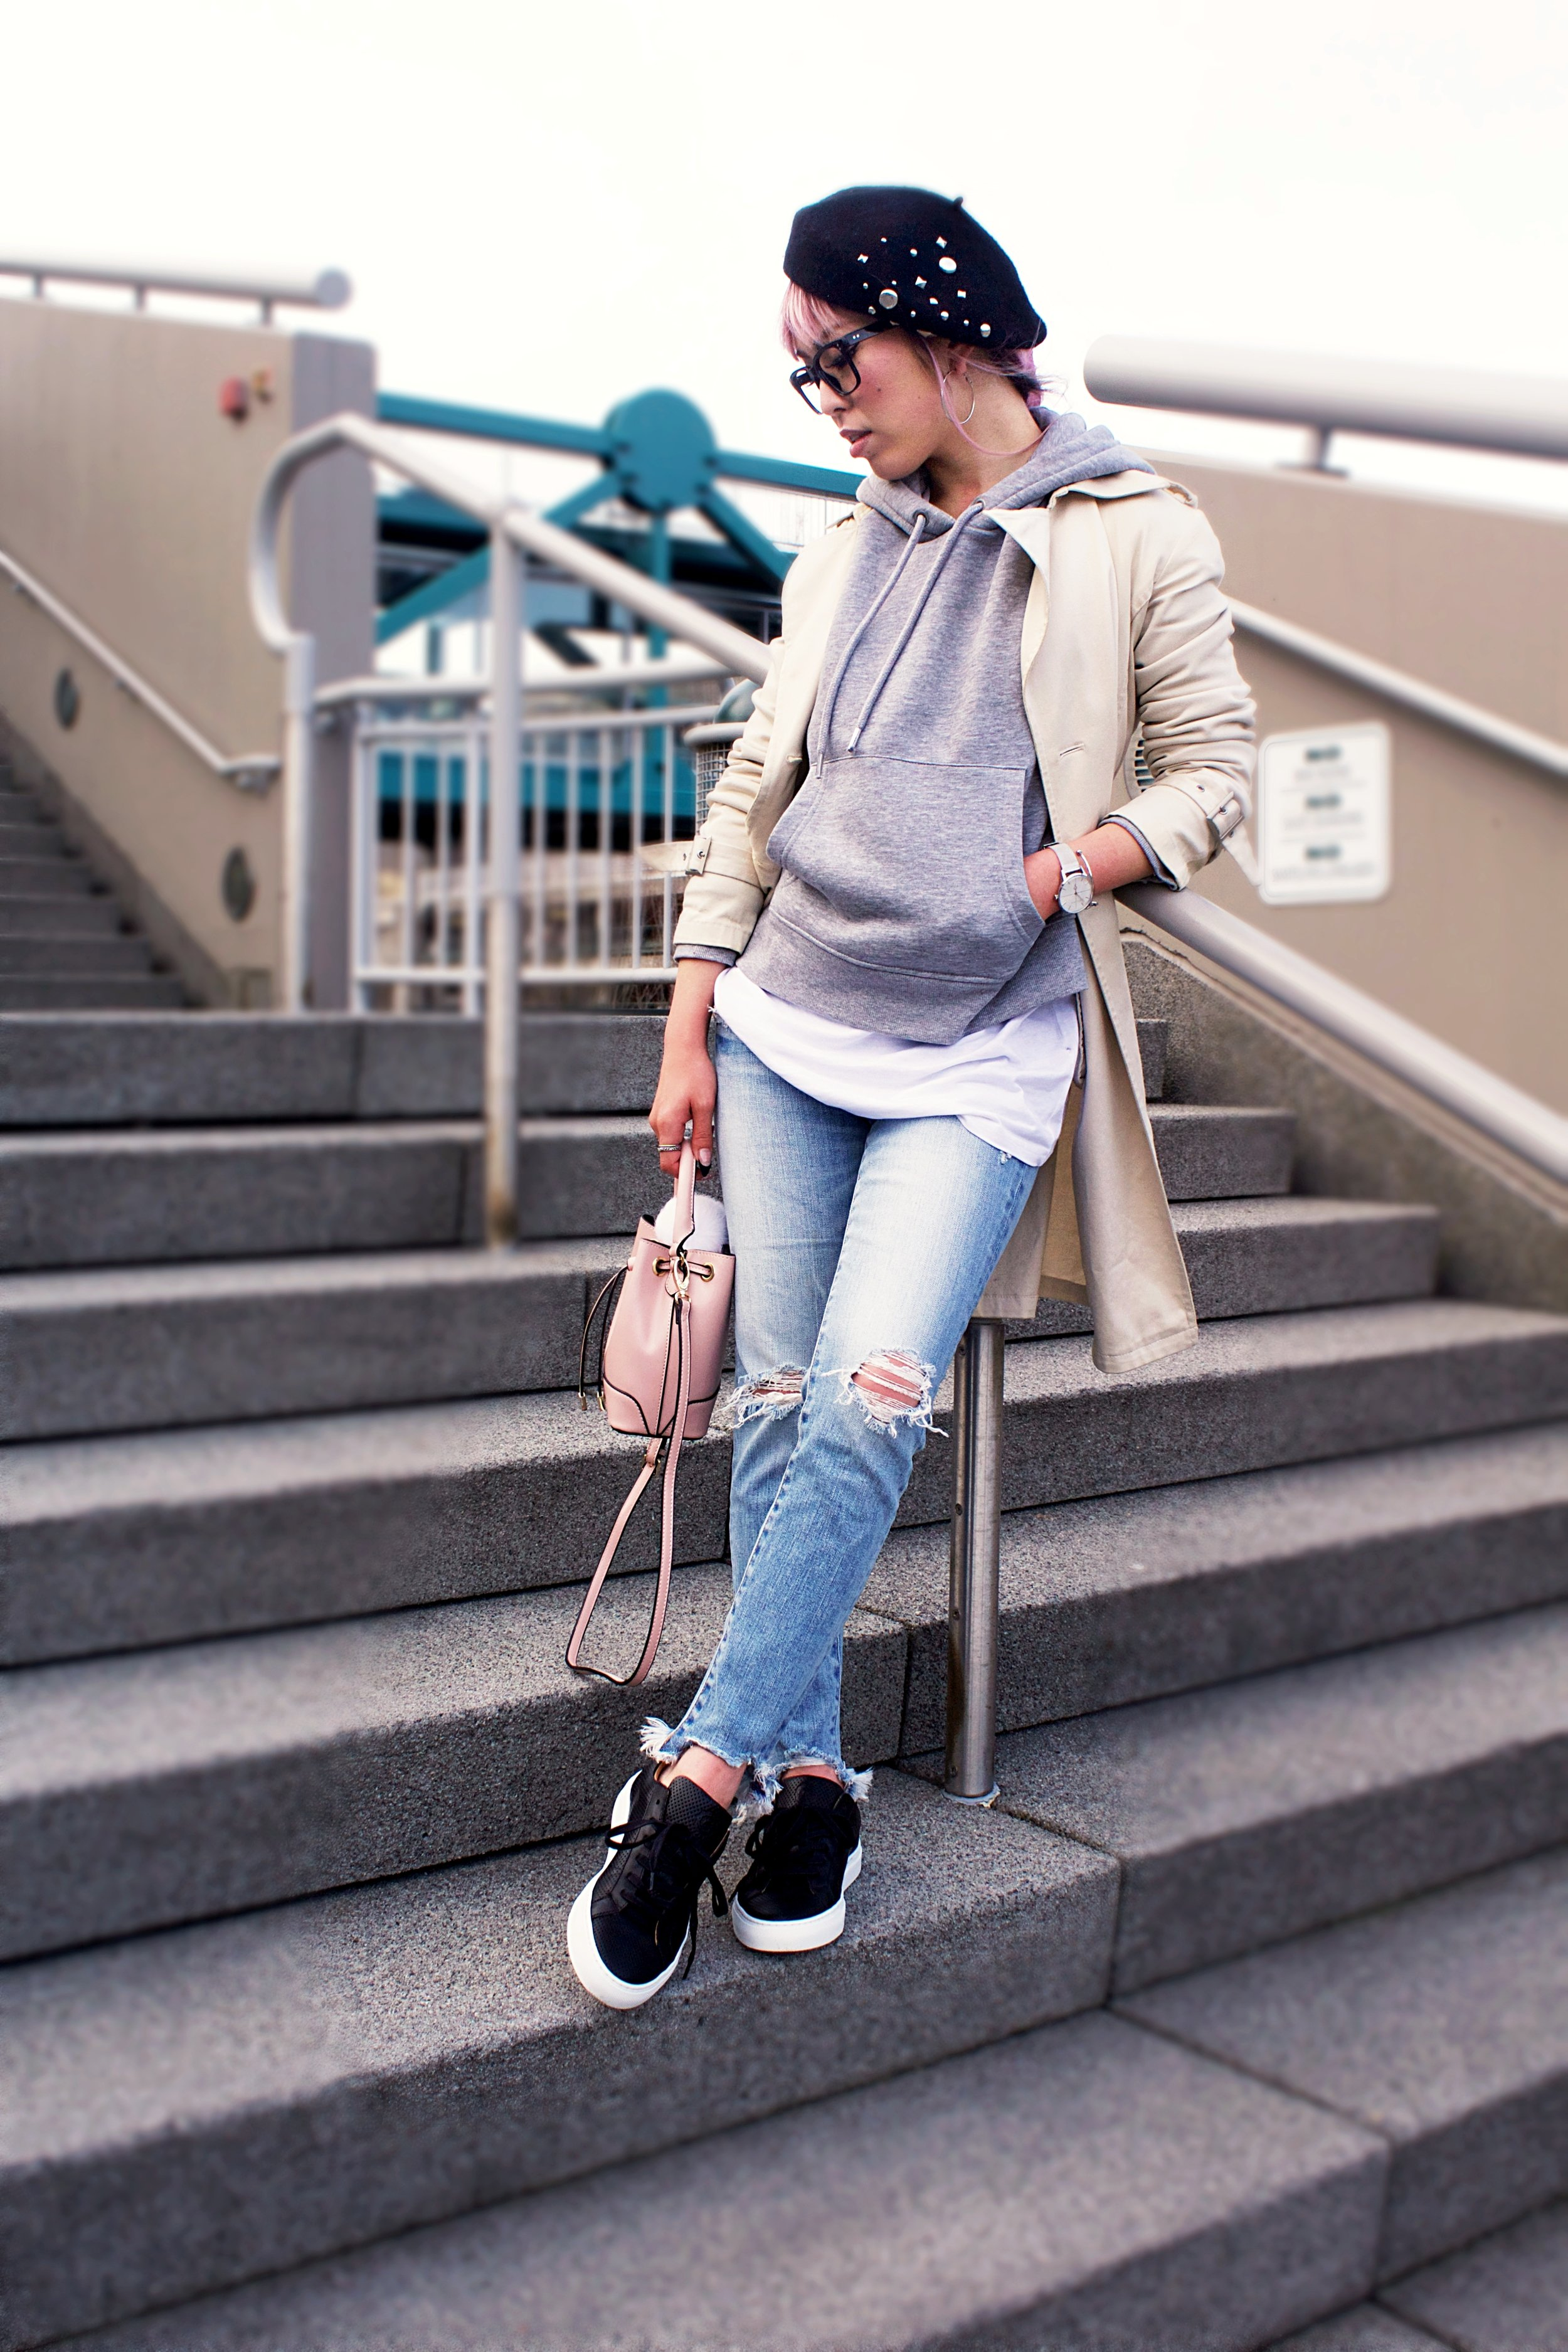 Greats THE ROYALE_Black Leather Sneakers_H&M Gray hoodie_Uniqlo Trench Coat_Moussy Frayed Jeans_Forever 21 Blush Mini Bucket Bag_Aikas love Closet_Seattle Fashion Style Blogger_Japanese 9